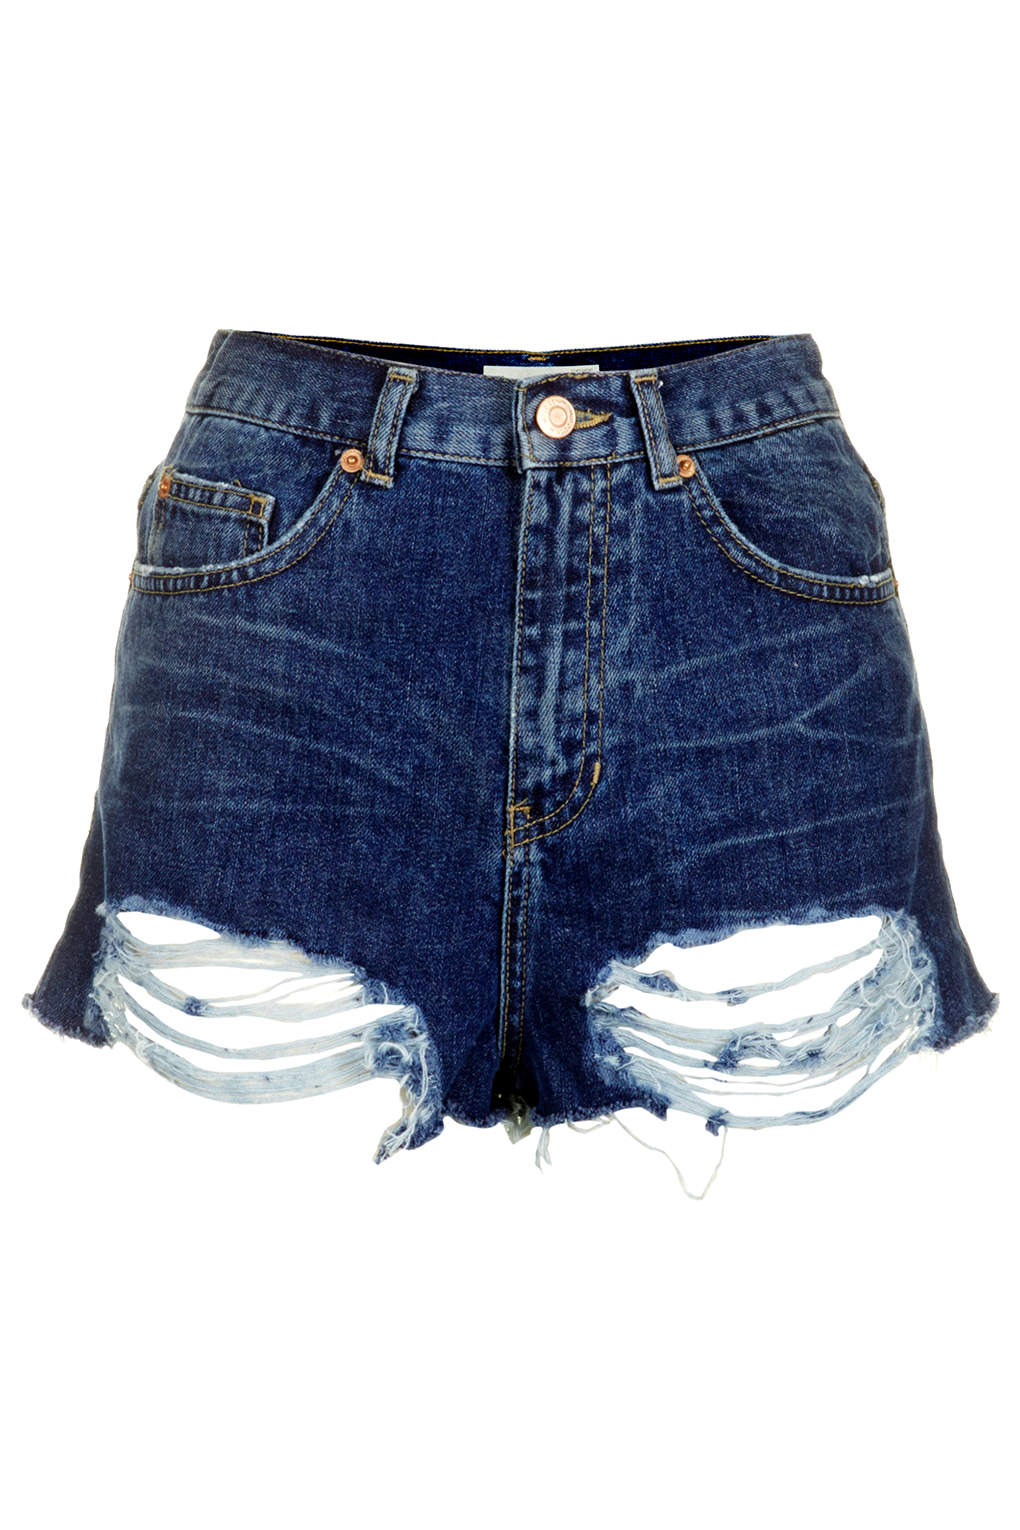 MOTO Mom Shorts in Distressed-Optik - Denim-Shorts - Shorts - Bekleidung